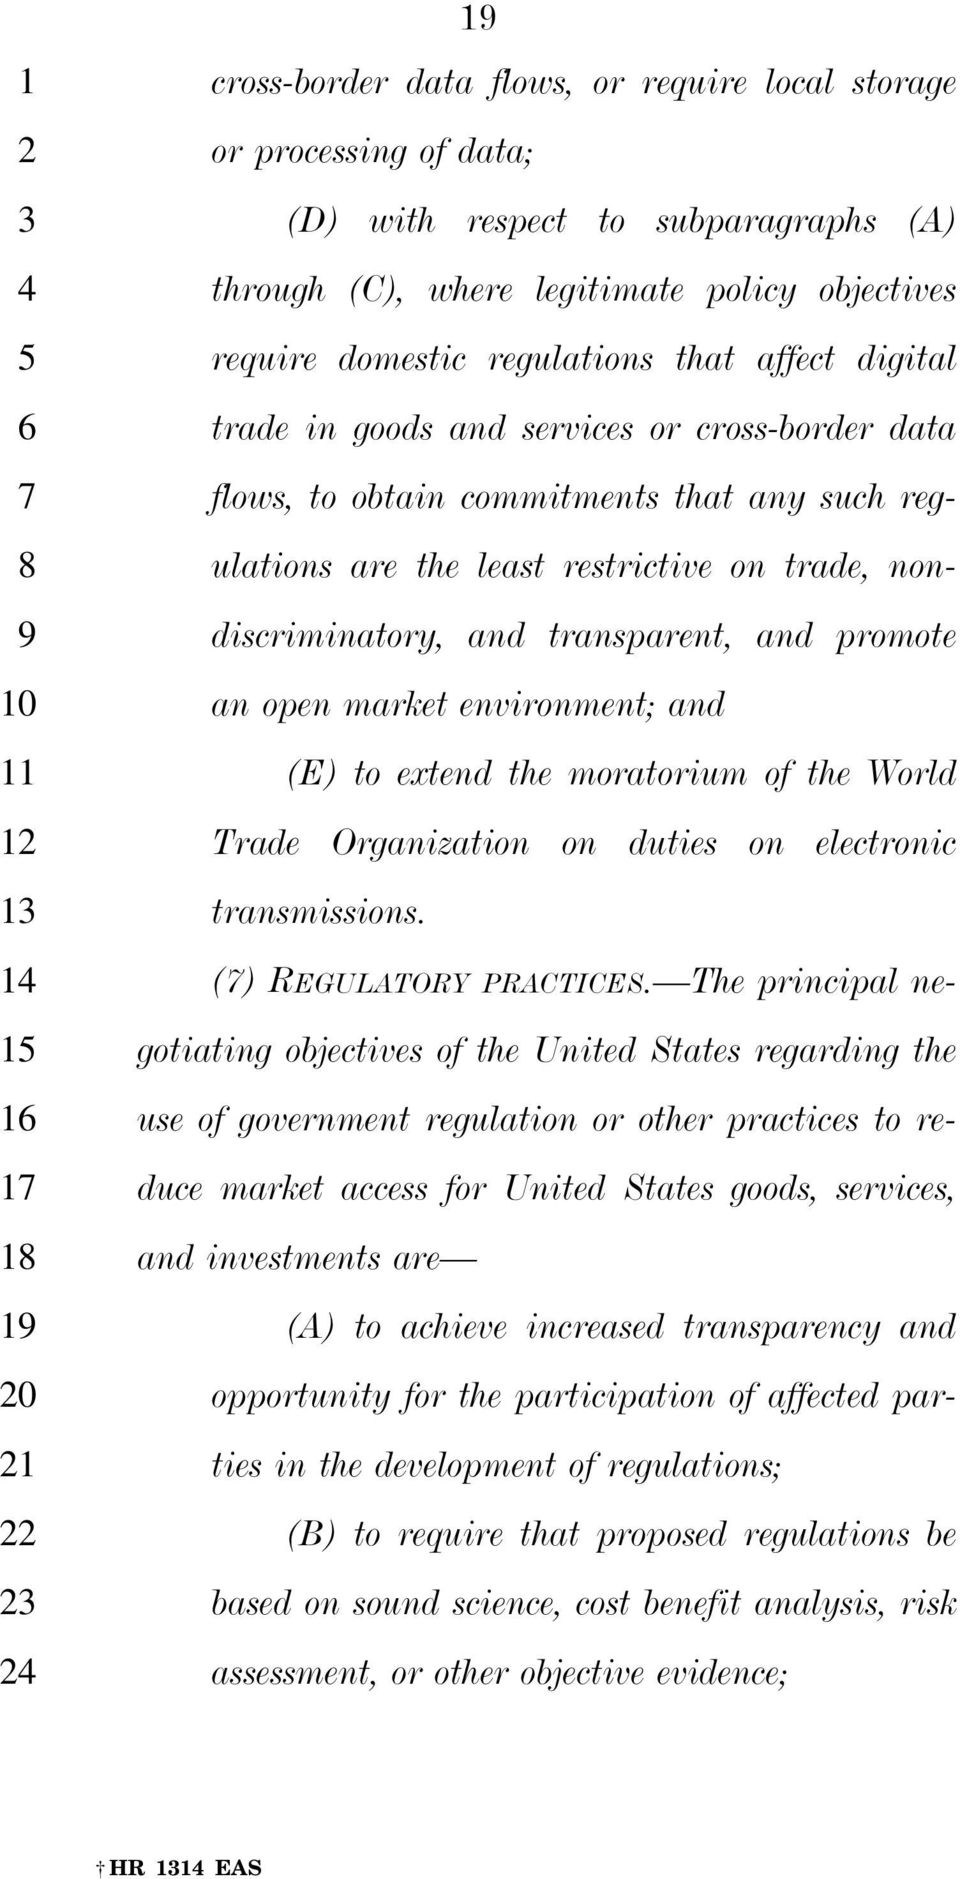 transparent, and promote an open market environment; and (E) to extend the moratorium of the World Trade Organization on duties on electronic transmissions. () REGULATORY PRACTICES.